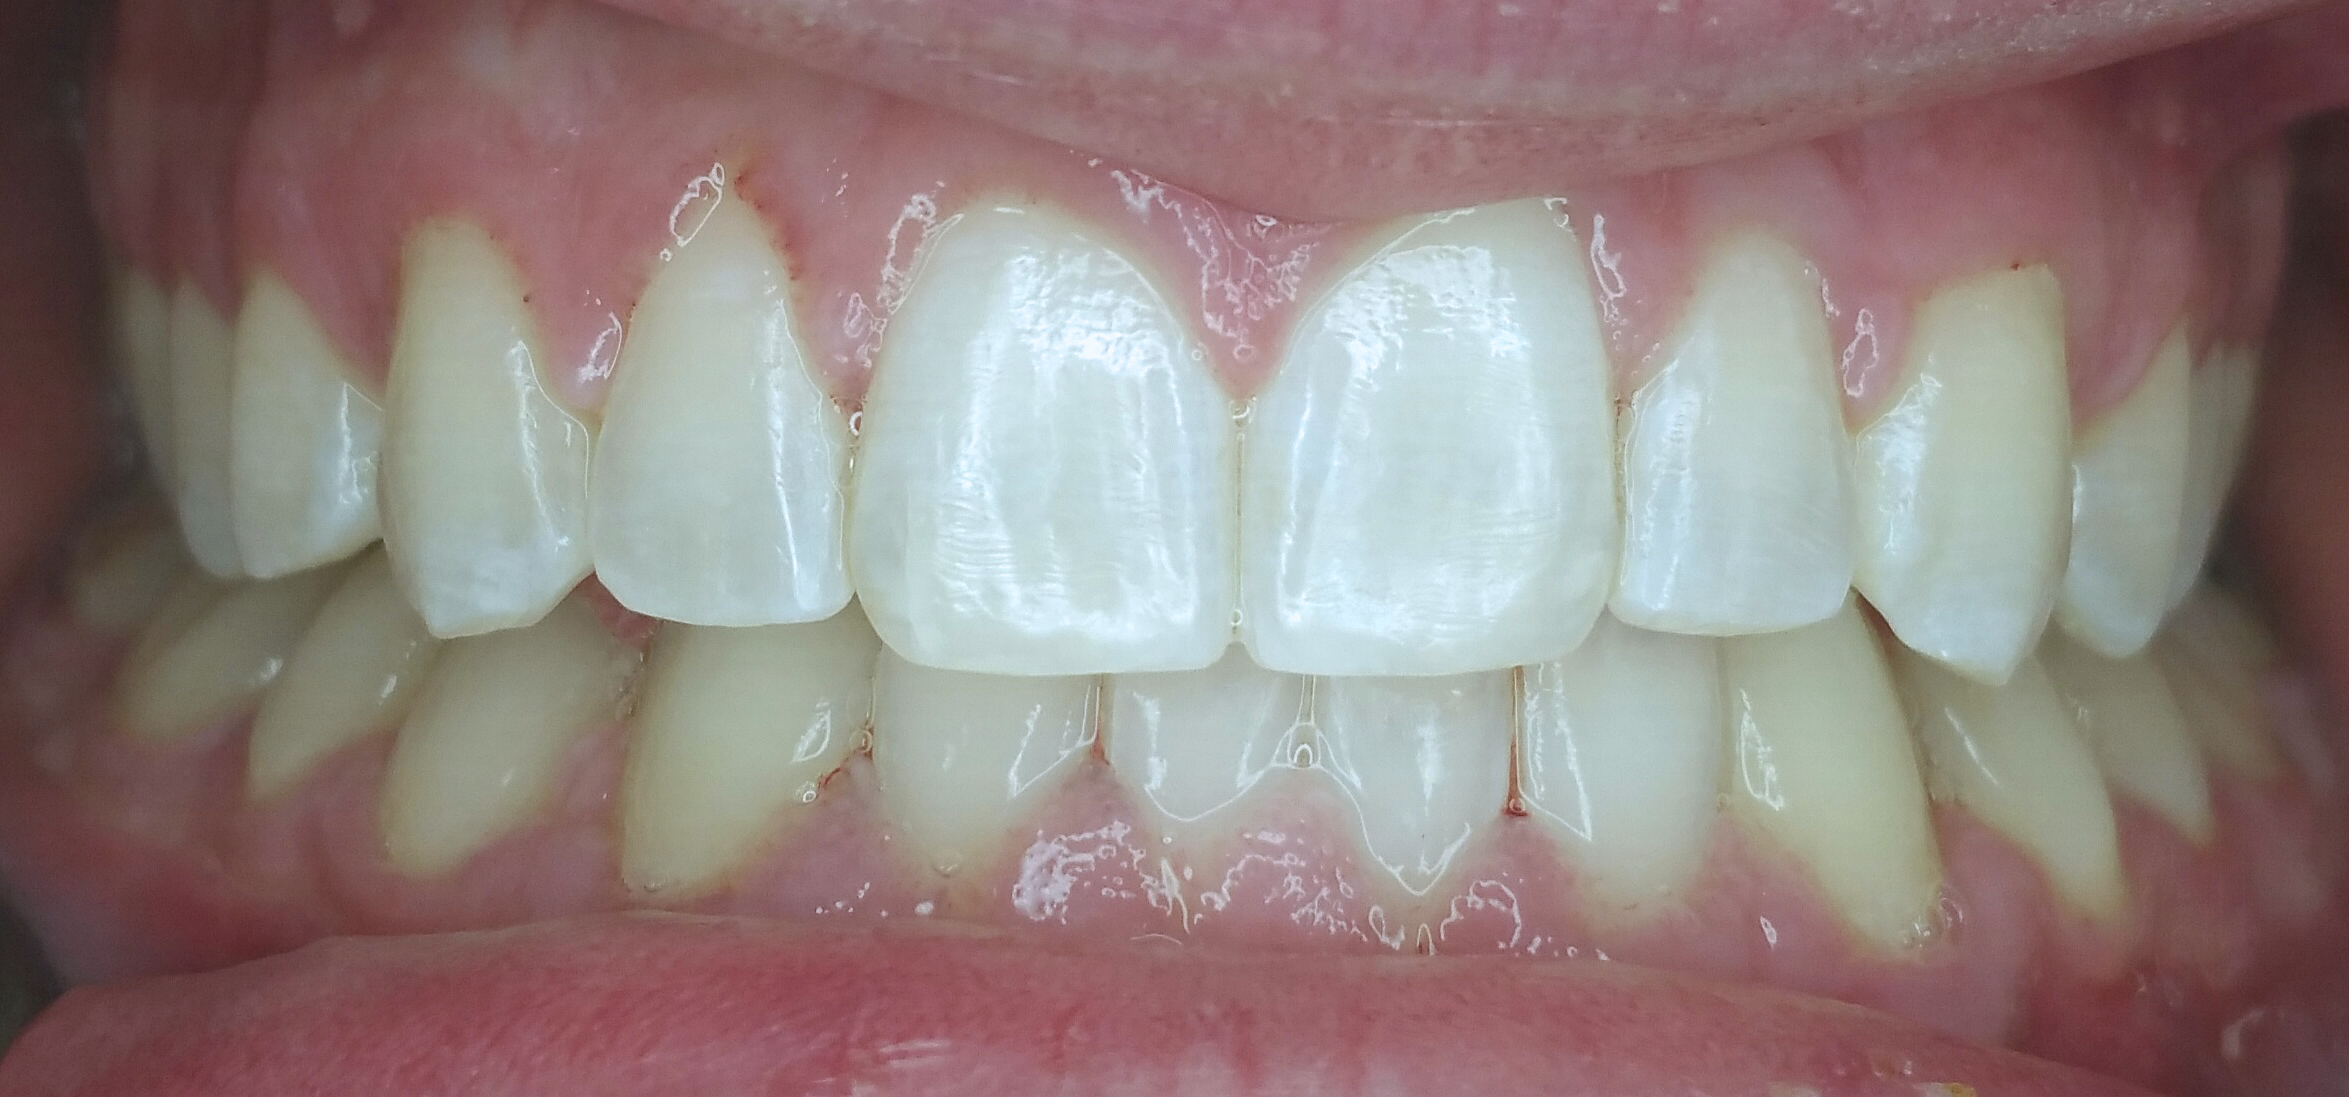 PowerProx 6-month Braces Case 4 after